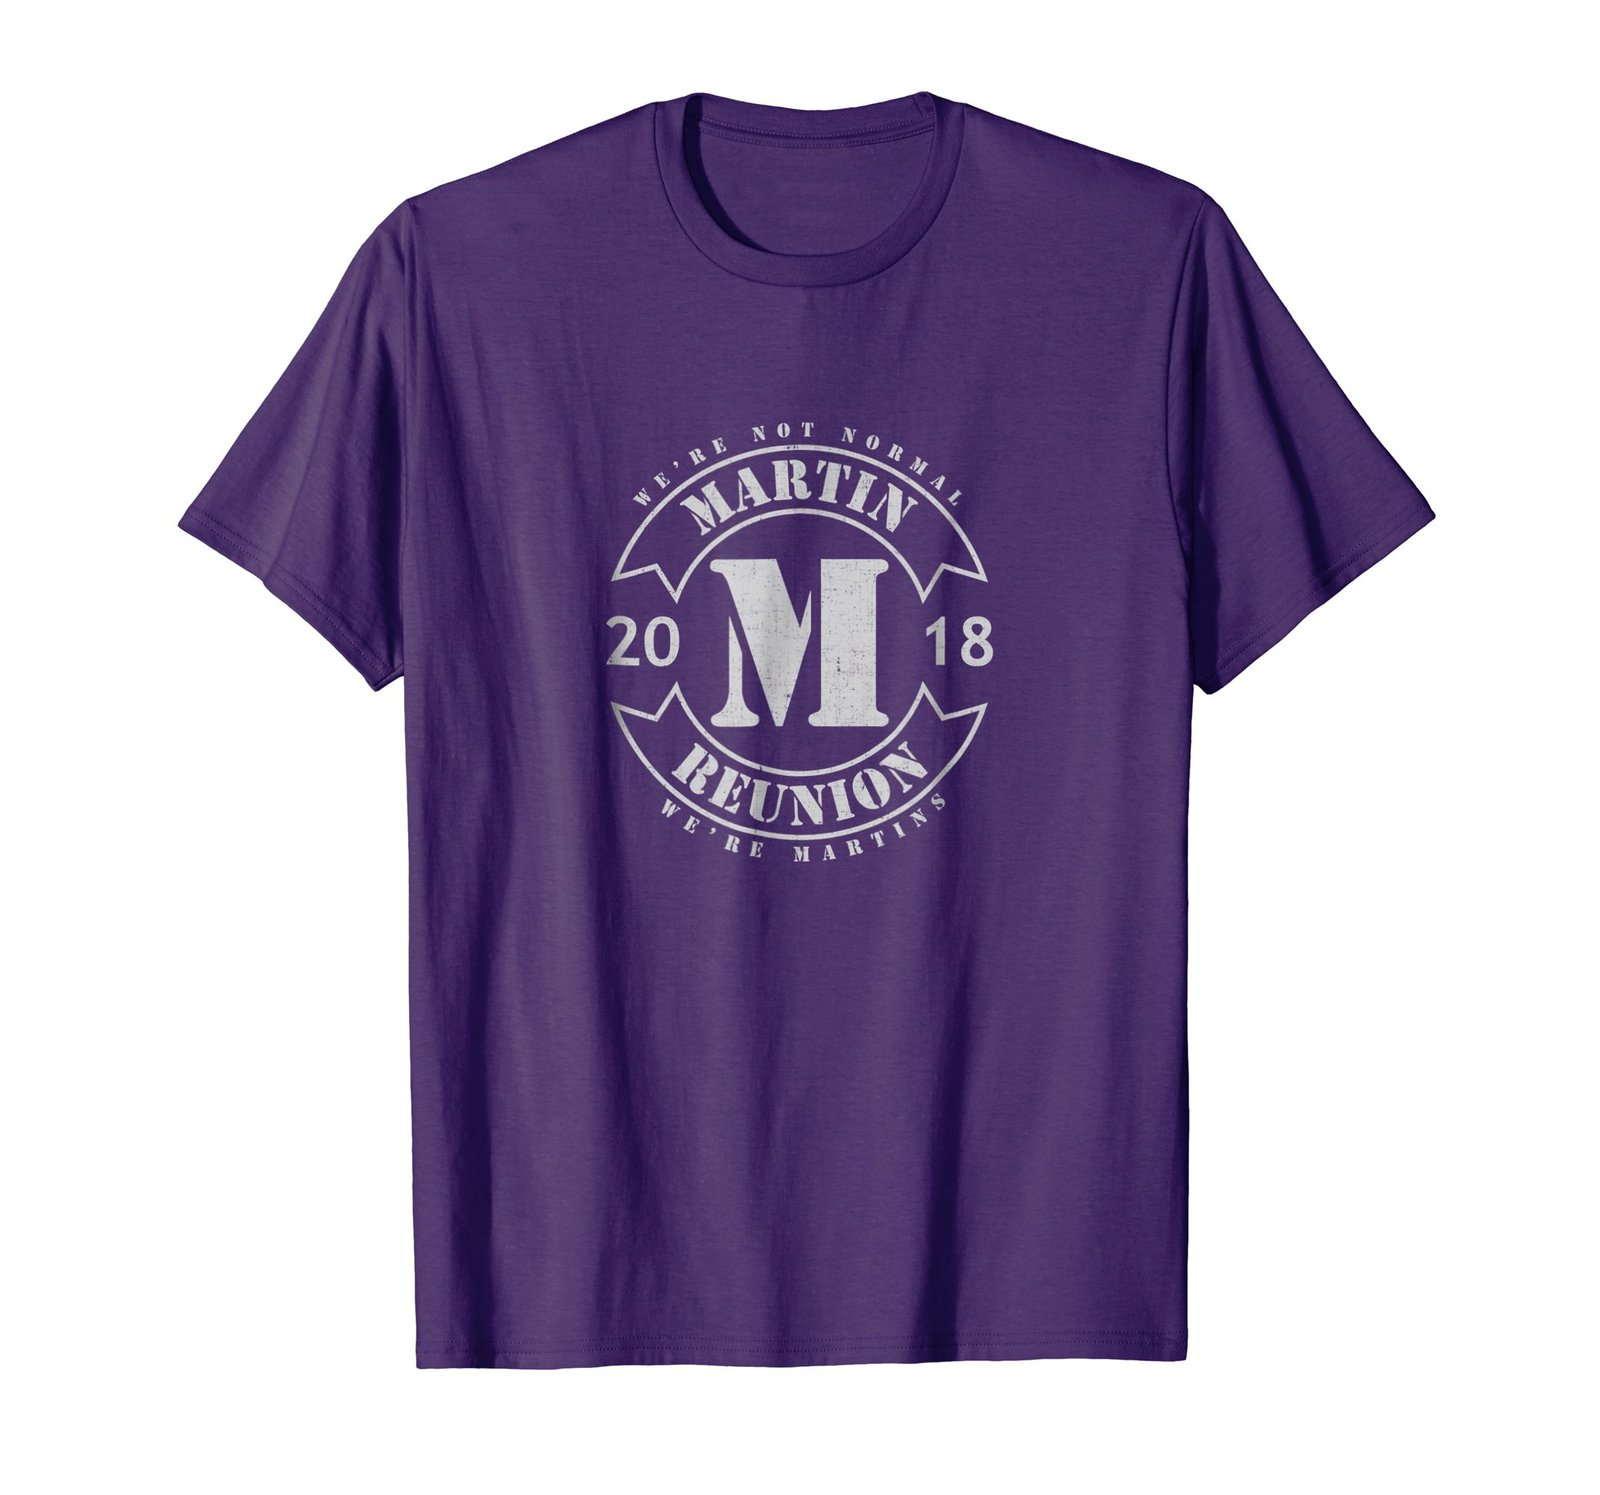 """Funny Shirts - Martin Family Reunion 2018 Funny """"We're Not Normal"""" T-S - $19.95 - $23.95"""